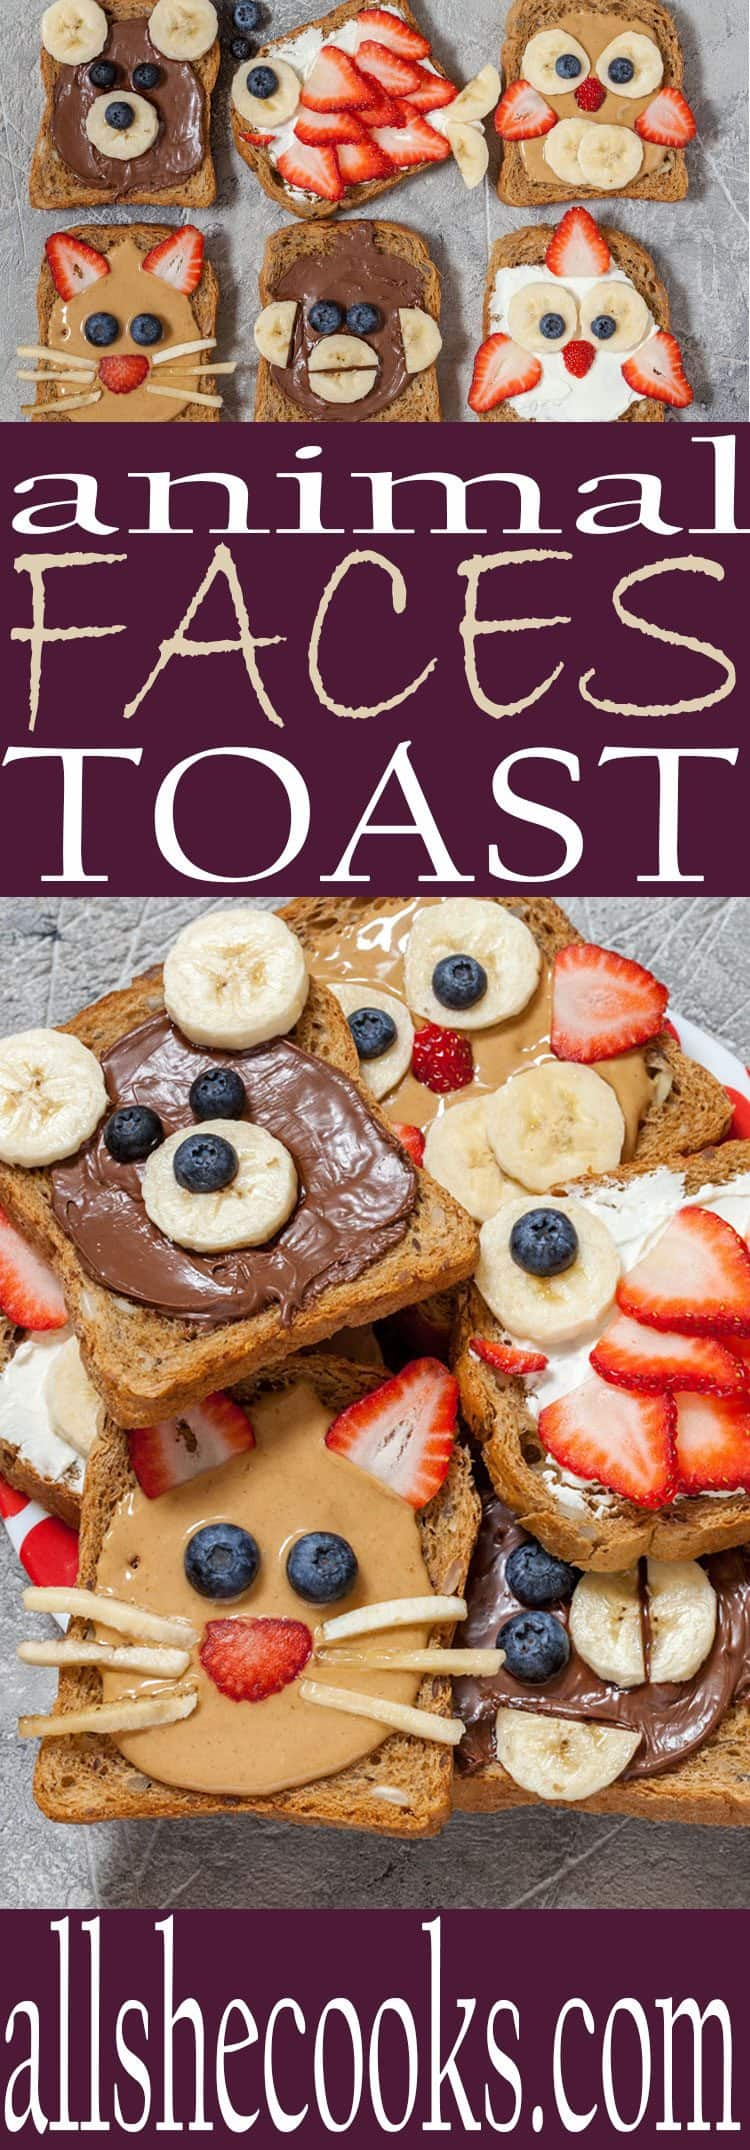 Making meals enjoyable for children is straightforward with these animal faces toast tips.